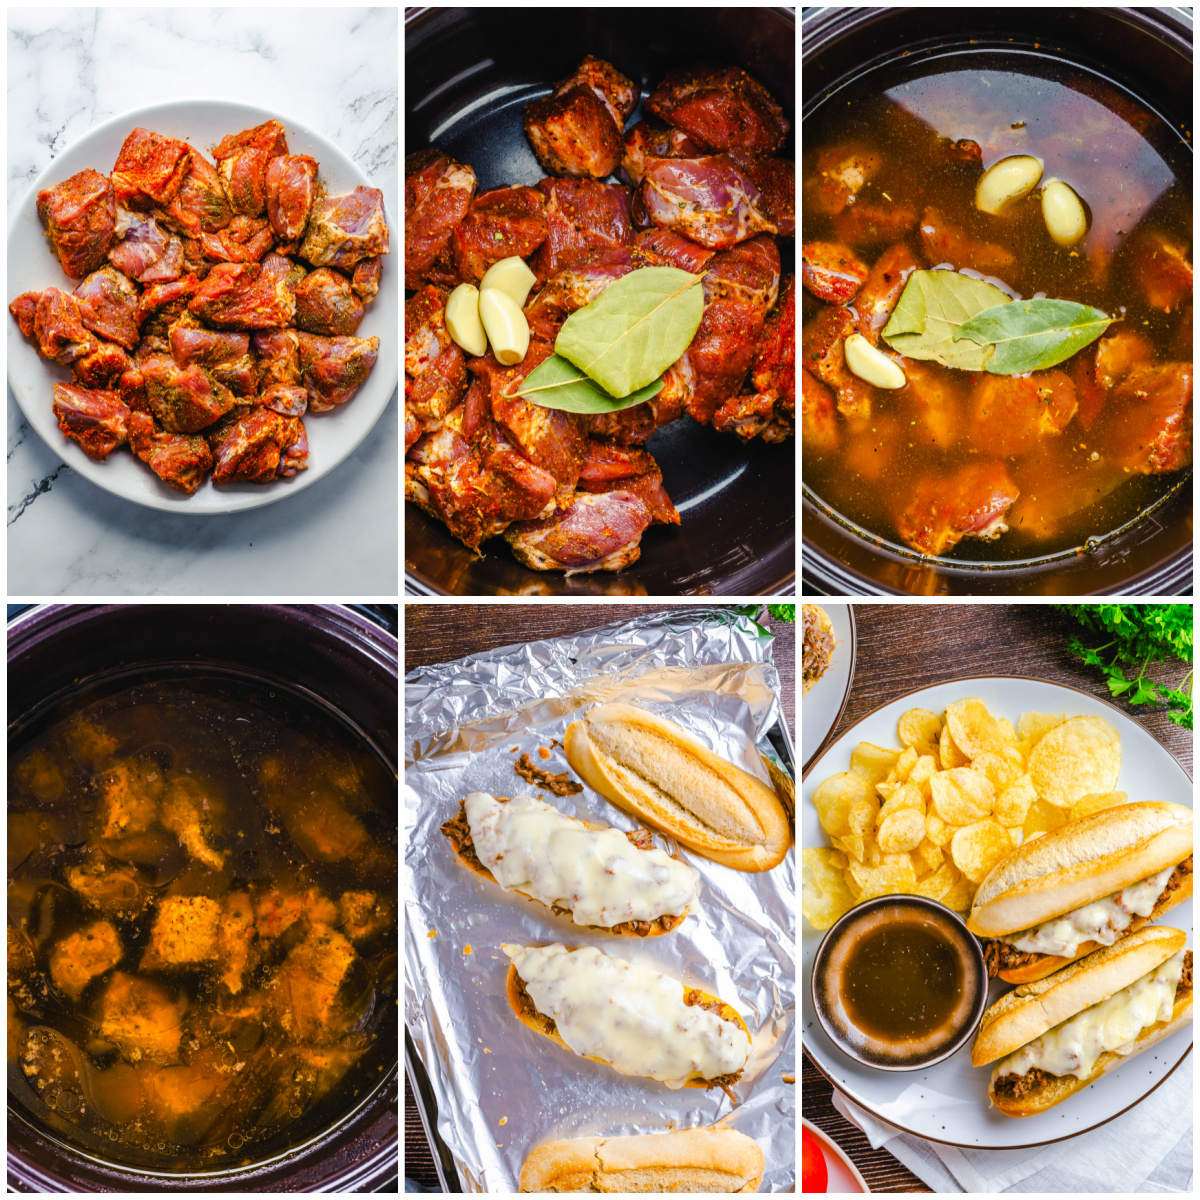 Step by step photos on how to make a Crock Pot French Dip